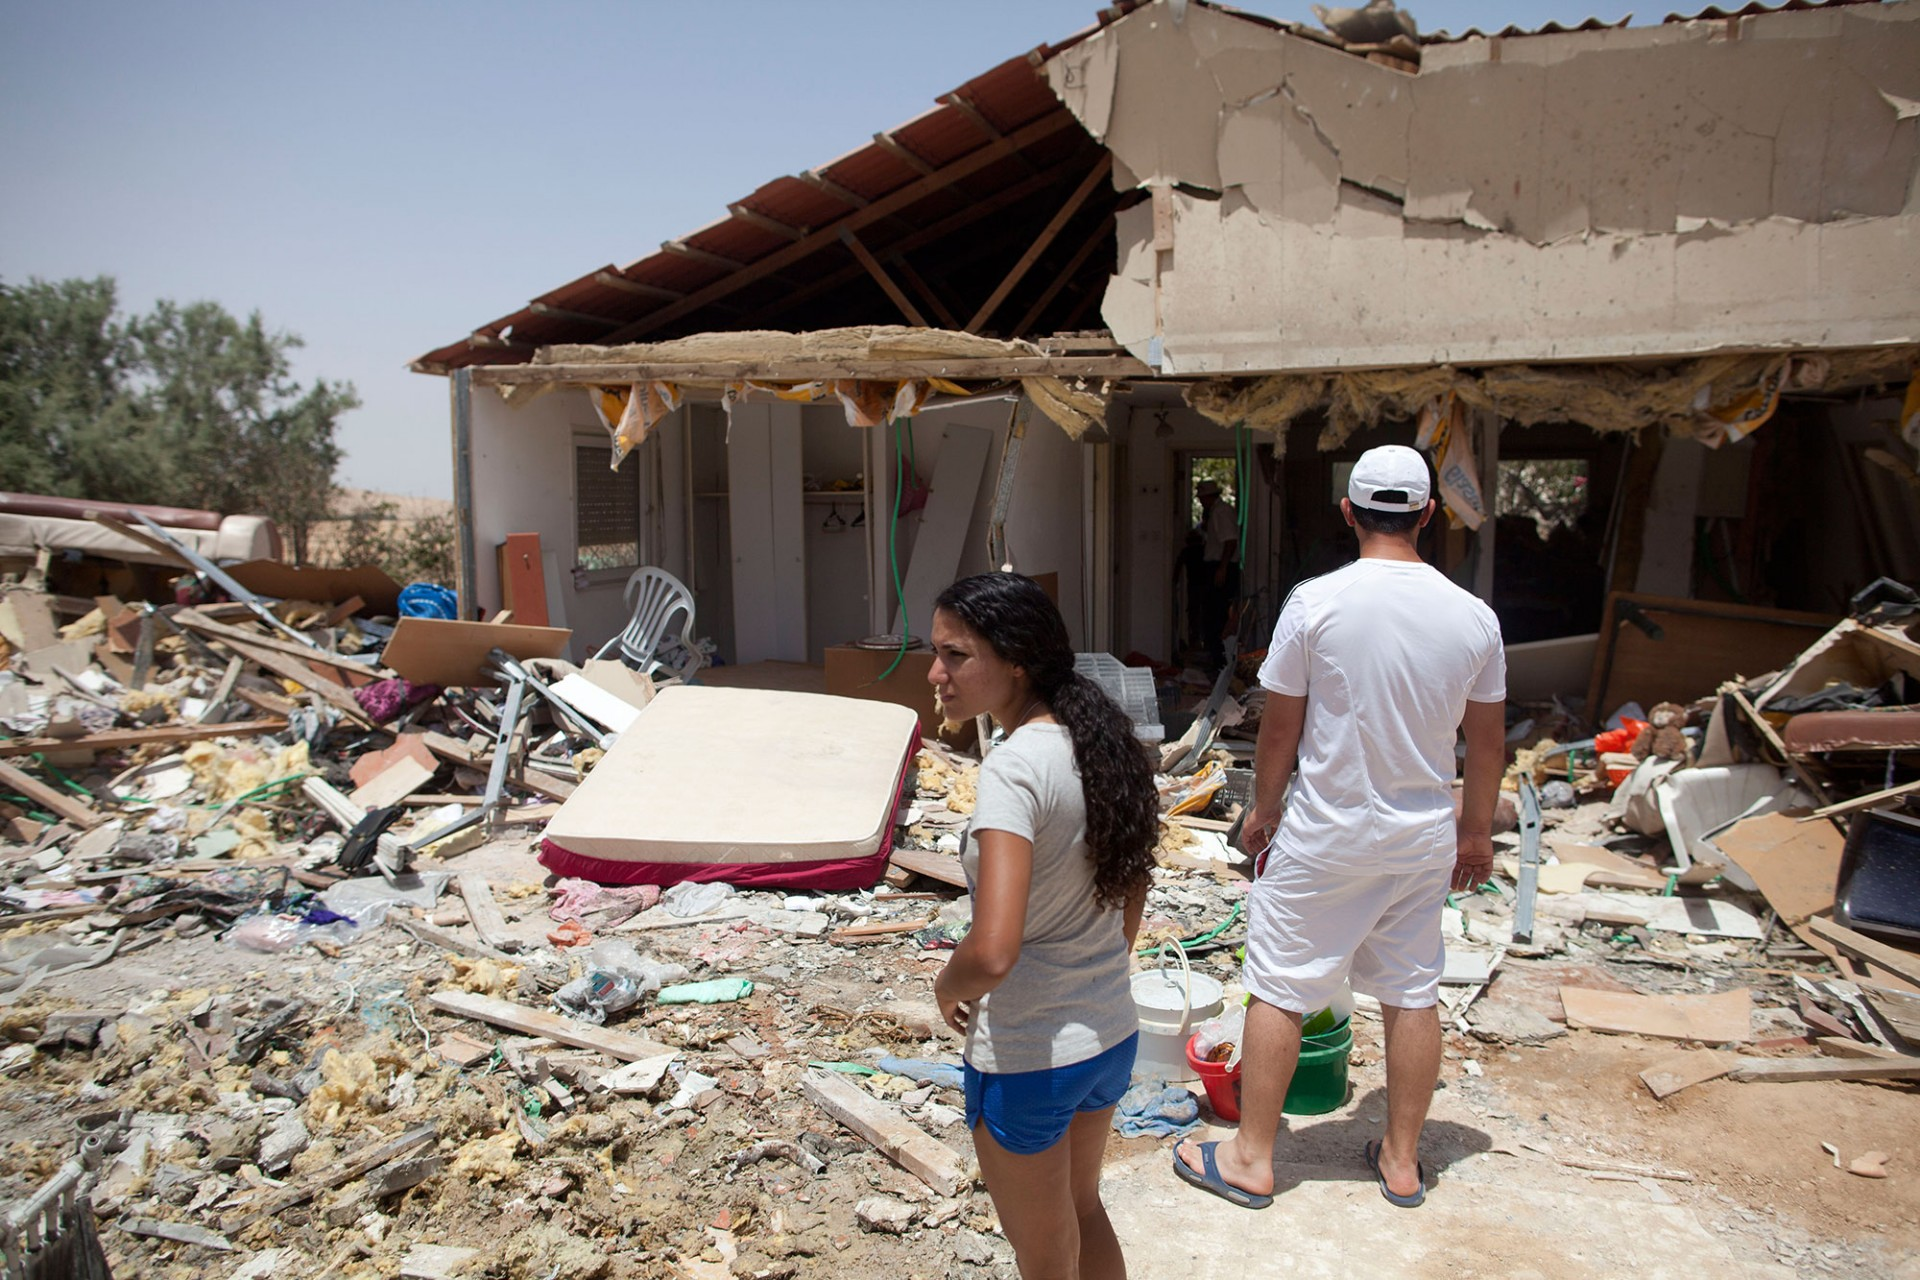 An Israeli woman inspects the damage of a house after it was hit by a rocket fired from Gaza on July 12, 2014 in Beer Sheva , Israel.